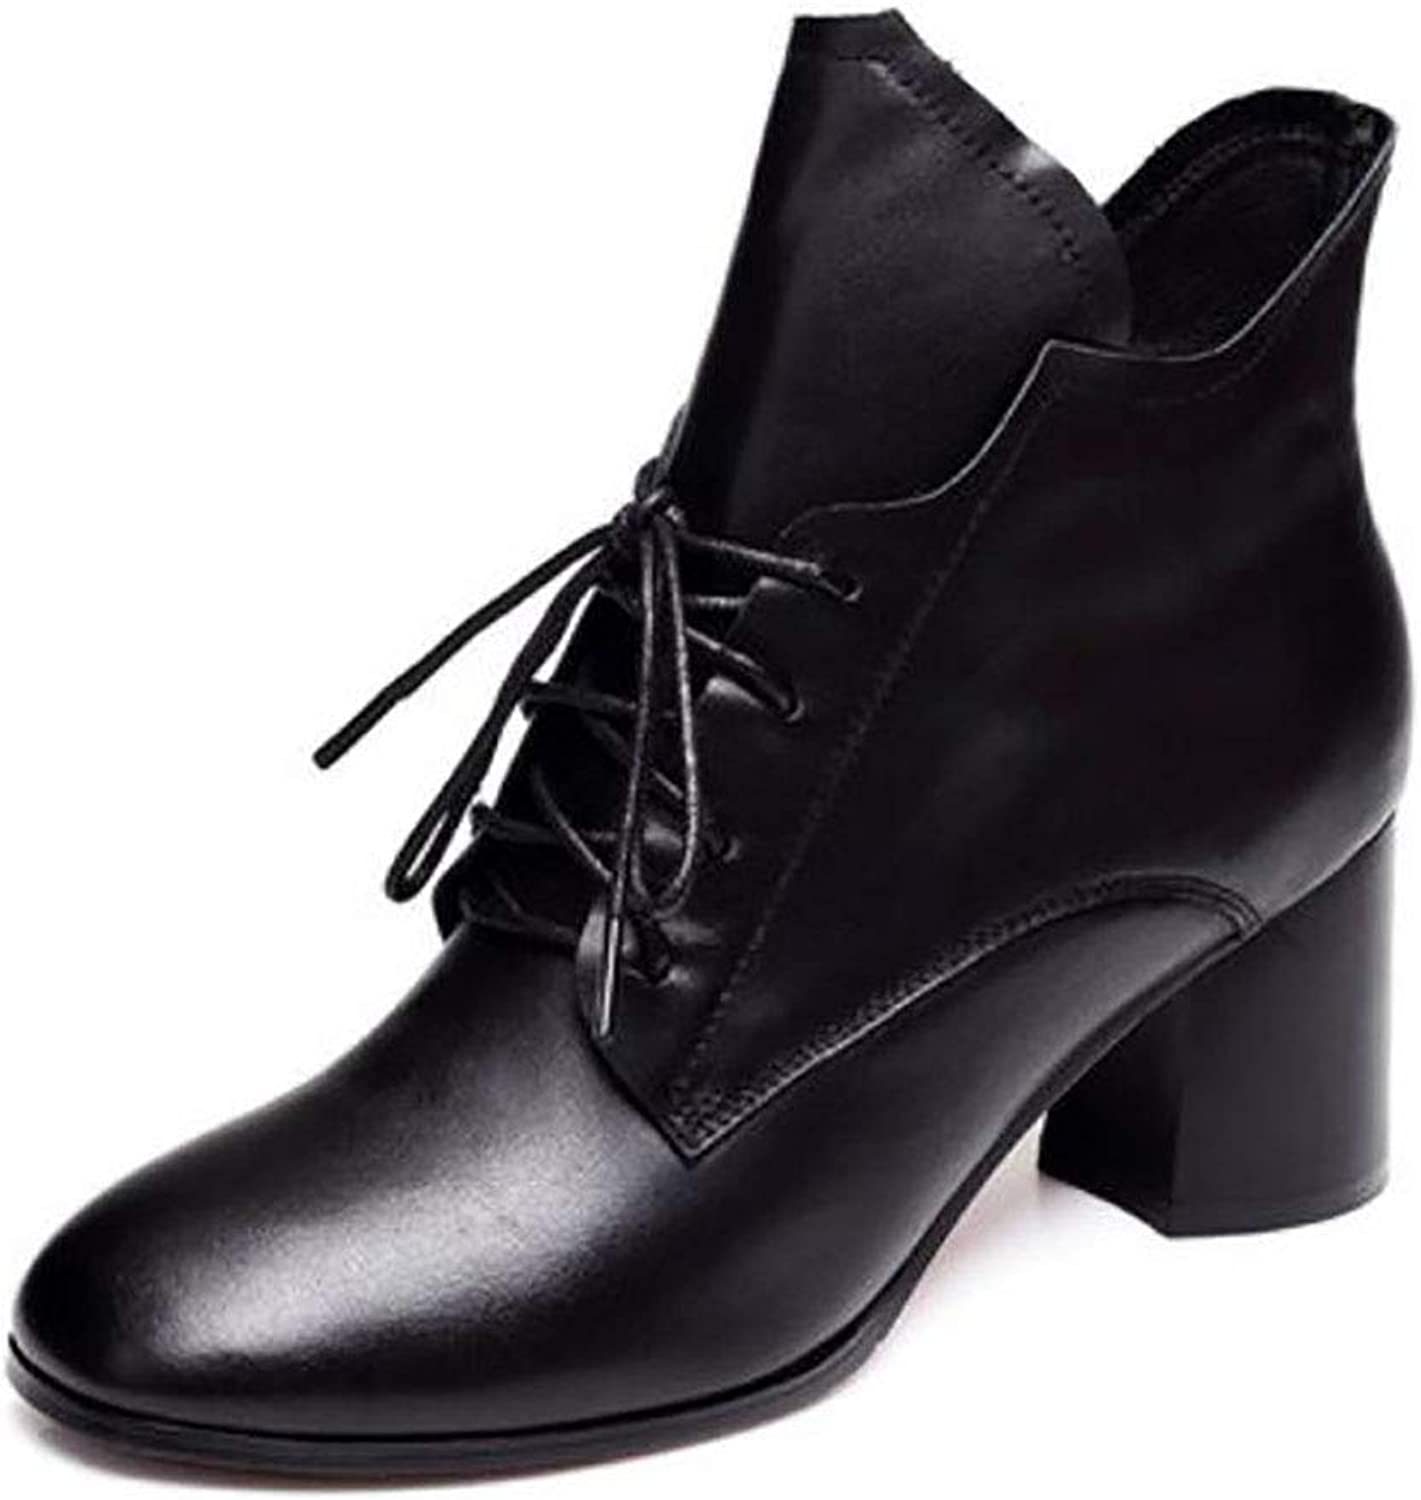 Women's shoes Winter Pointed Thick with Ankle Boots Female high Heel Female Leather Martin Boots (color   A, Size   36)